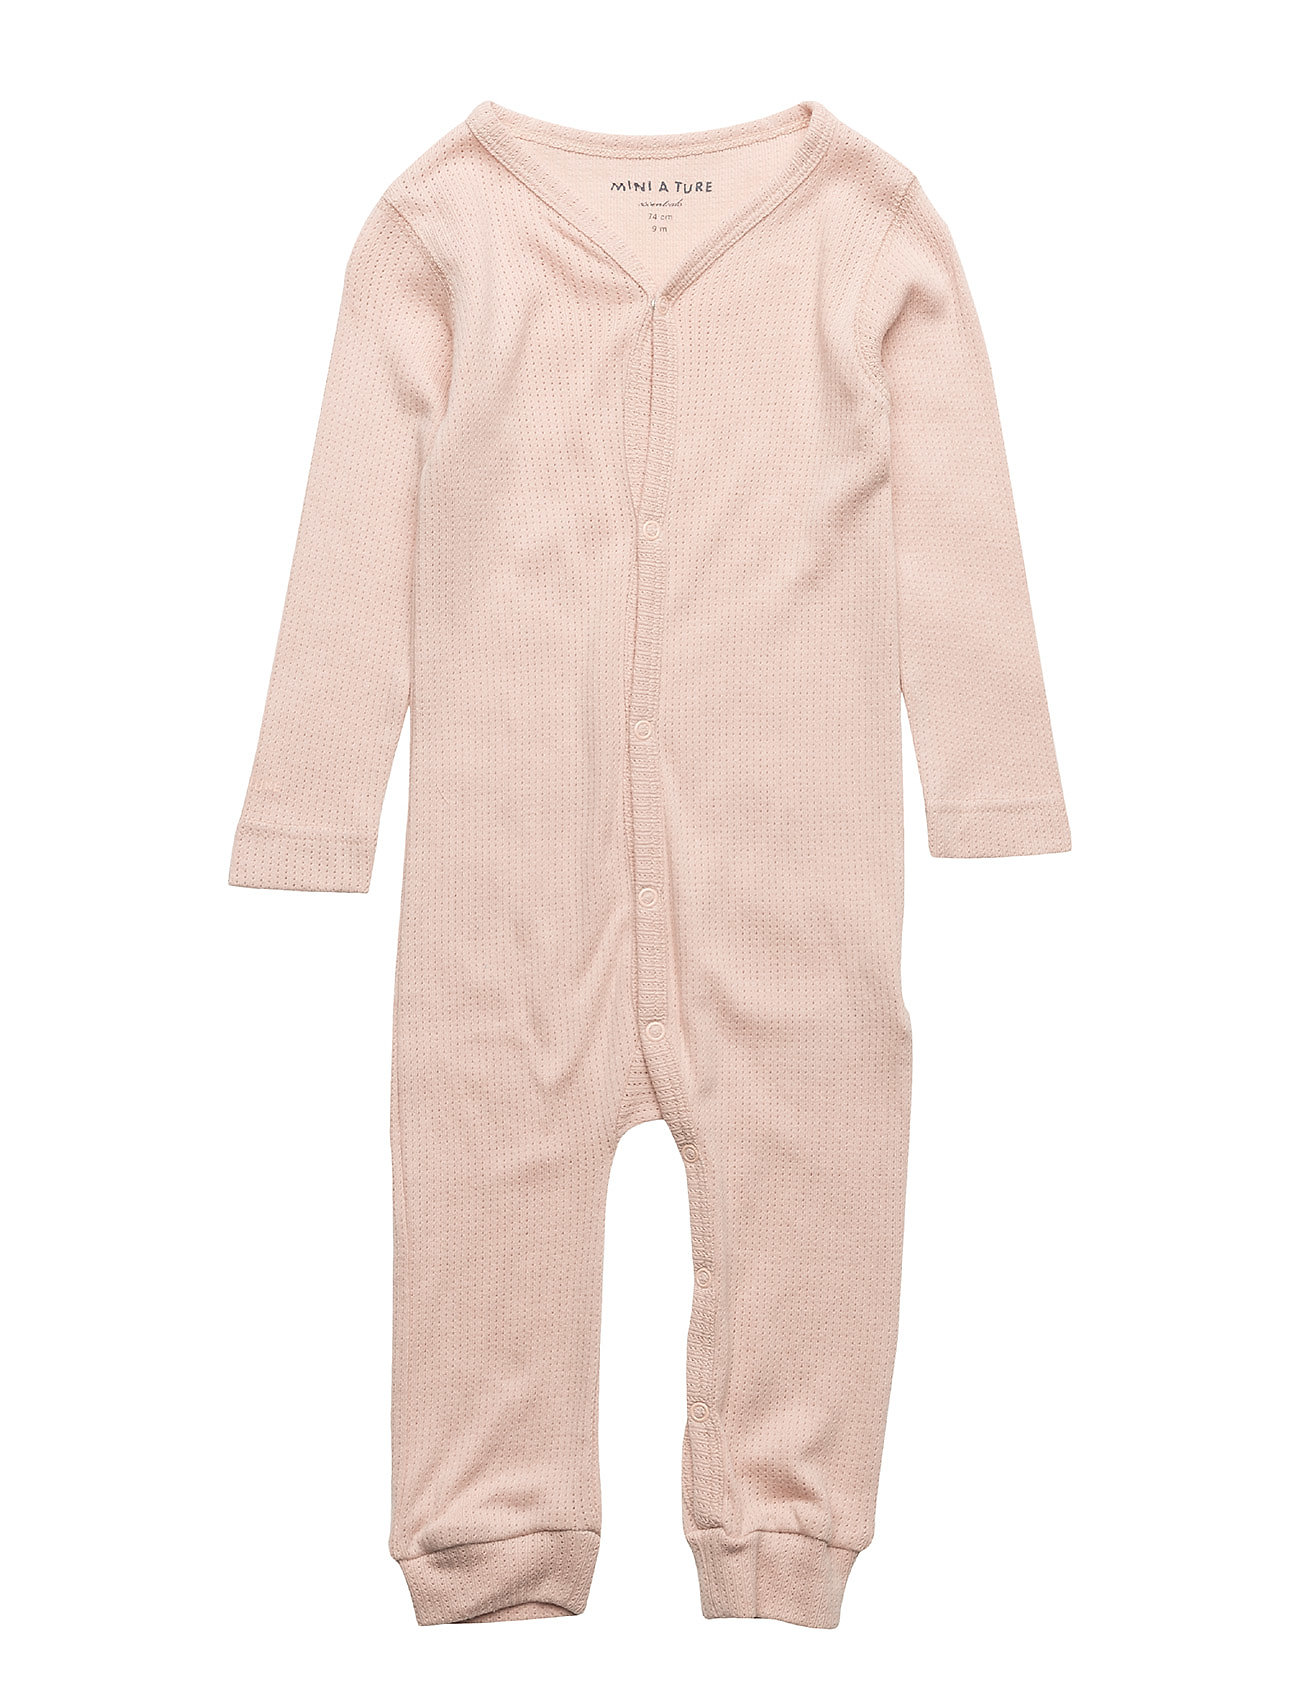 Mini A Ture Mattie Romper, B - ROSE DUST